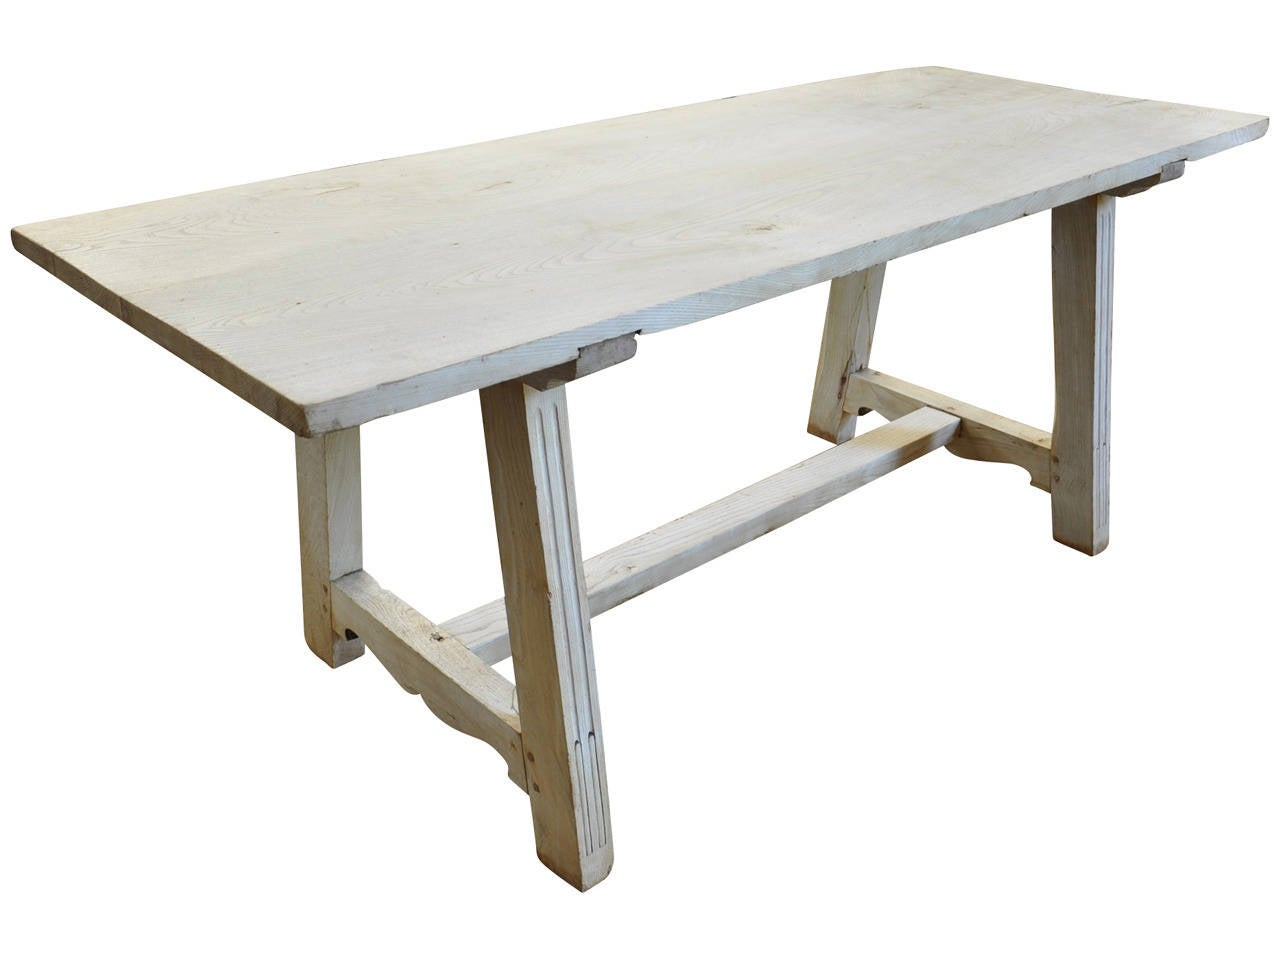 Early 19th Century Italian Farm or Trestle Table in Bleached Chestnut In Good Condition For Sale In Atlanta, GA